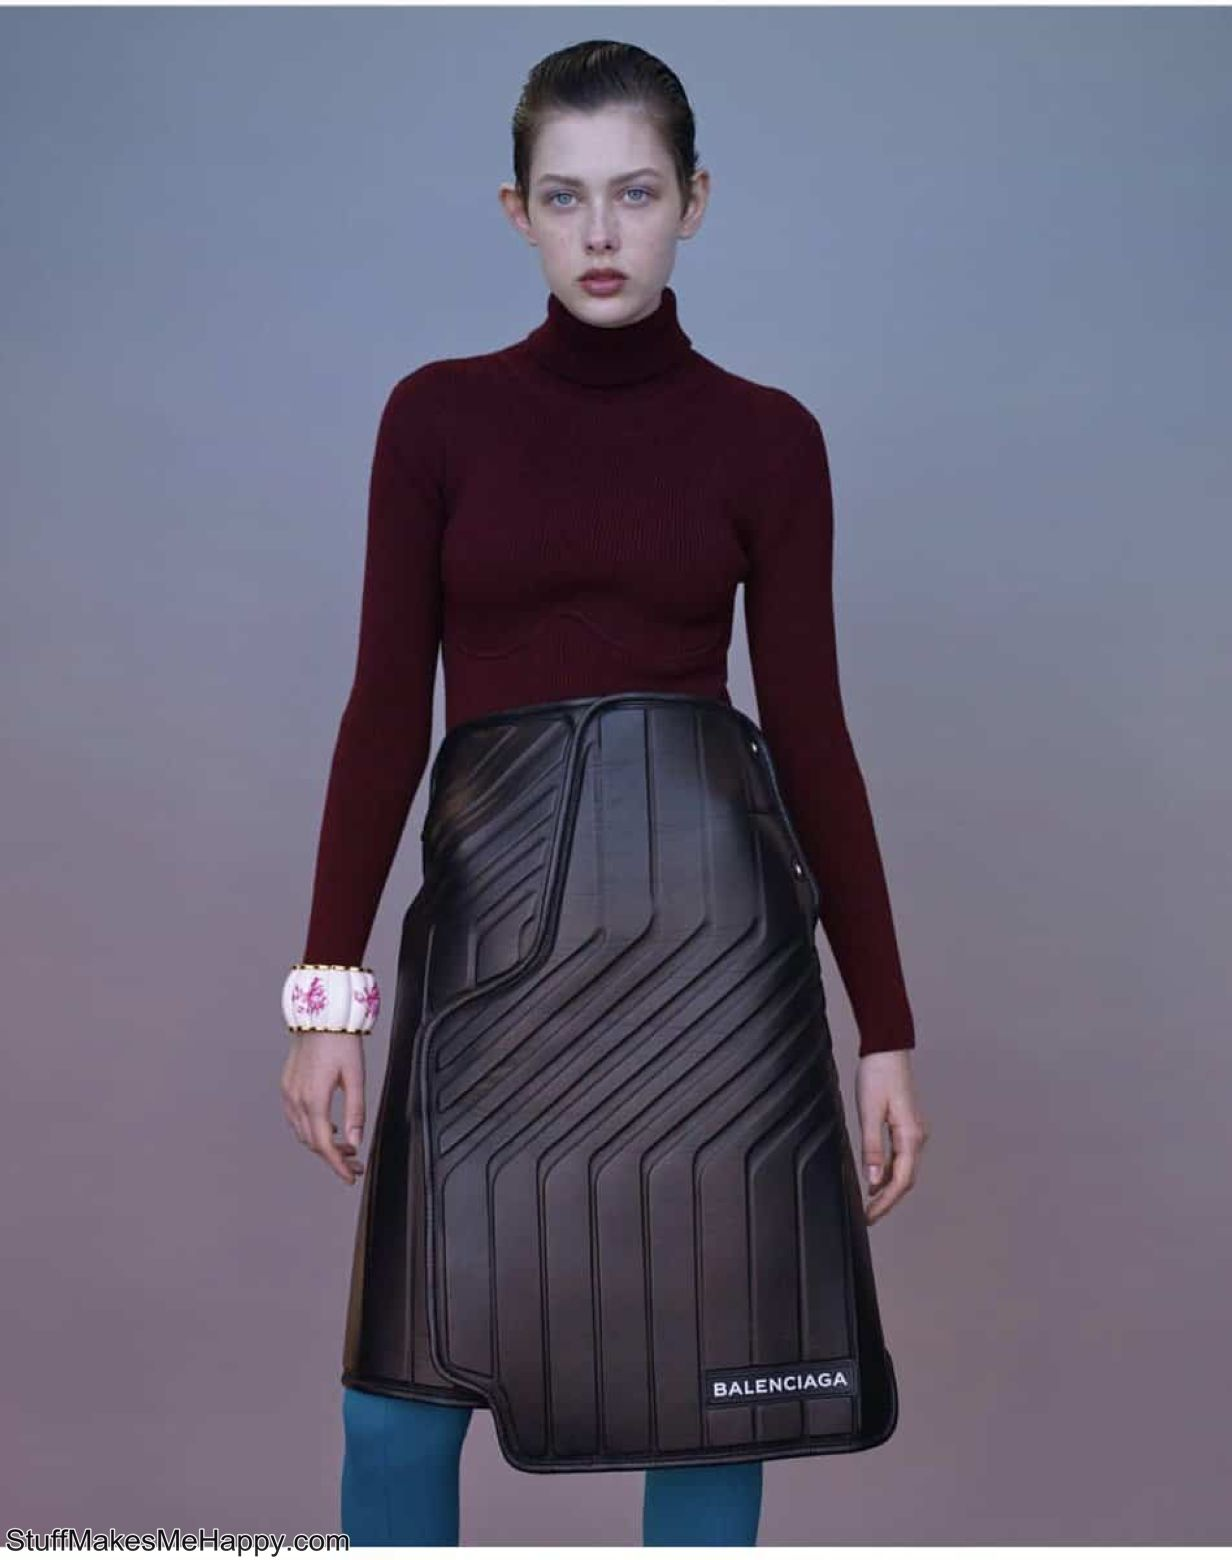 The skirt, which looks more like a car mat